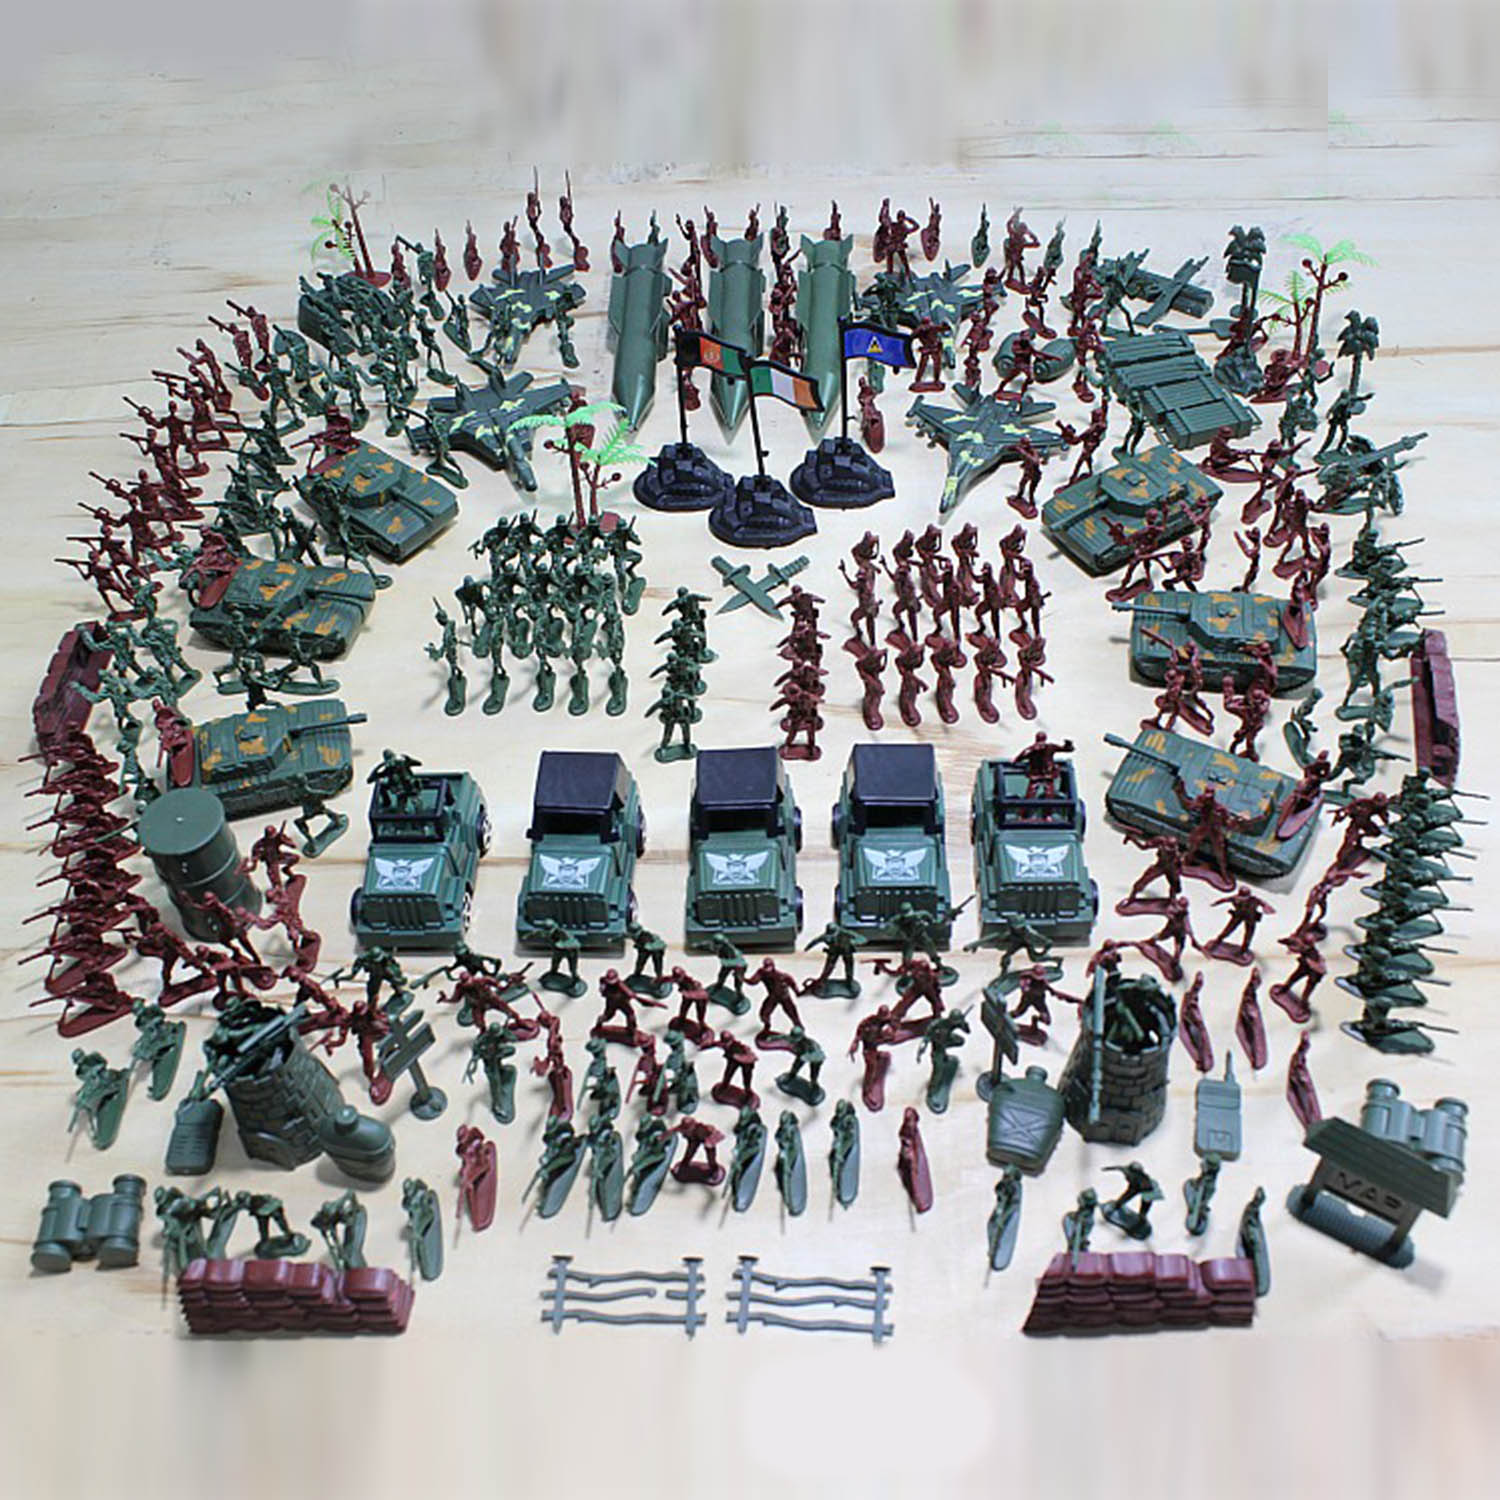 Kids 307pcs Plastic Military Soldier Army Base Model Army Men Figures Battle Group Weapon Accessories Playset Toys